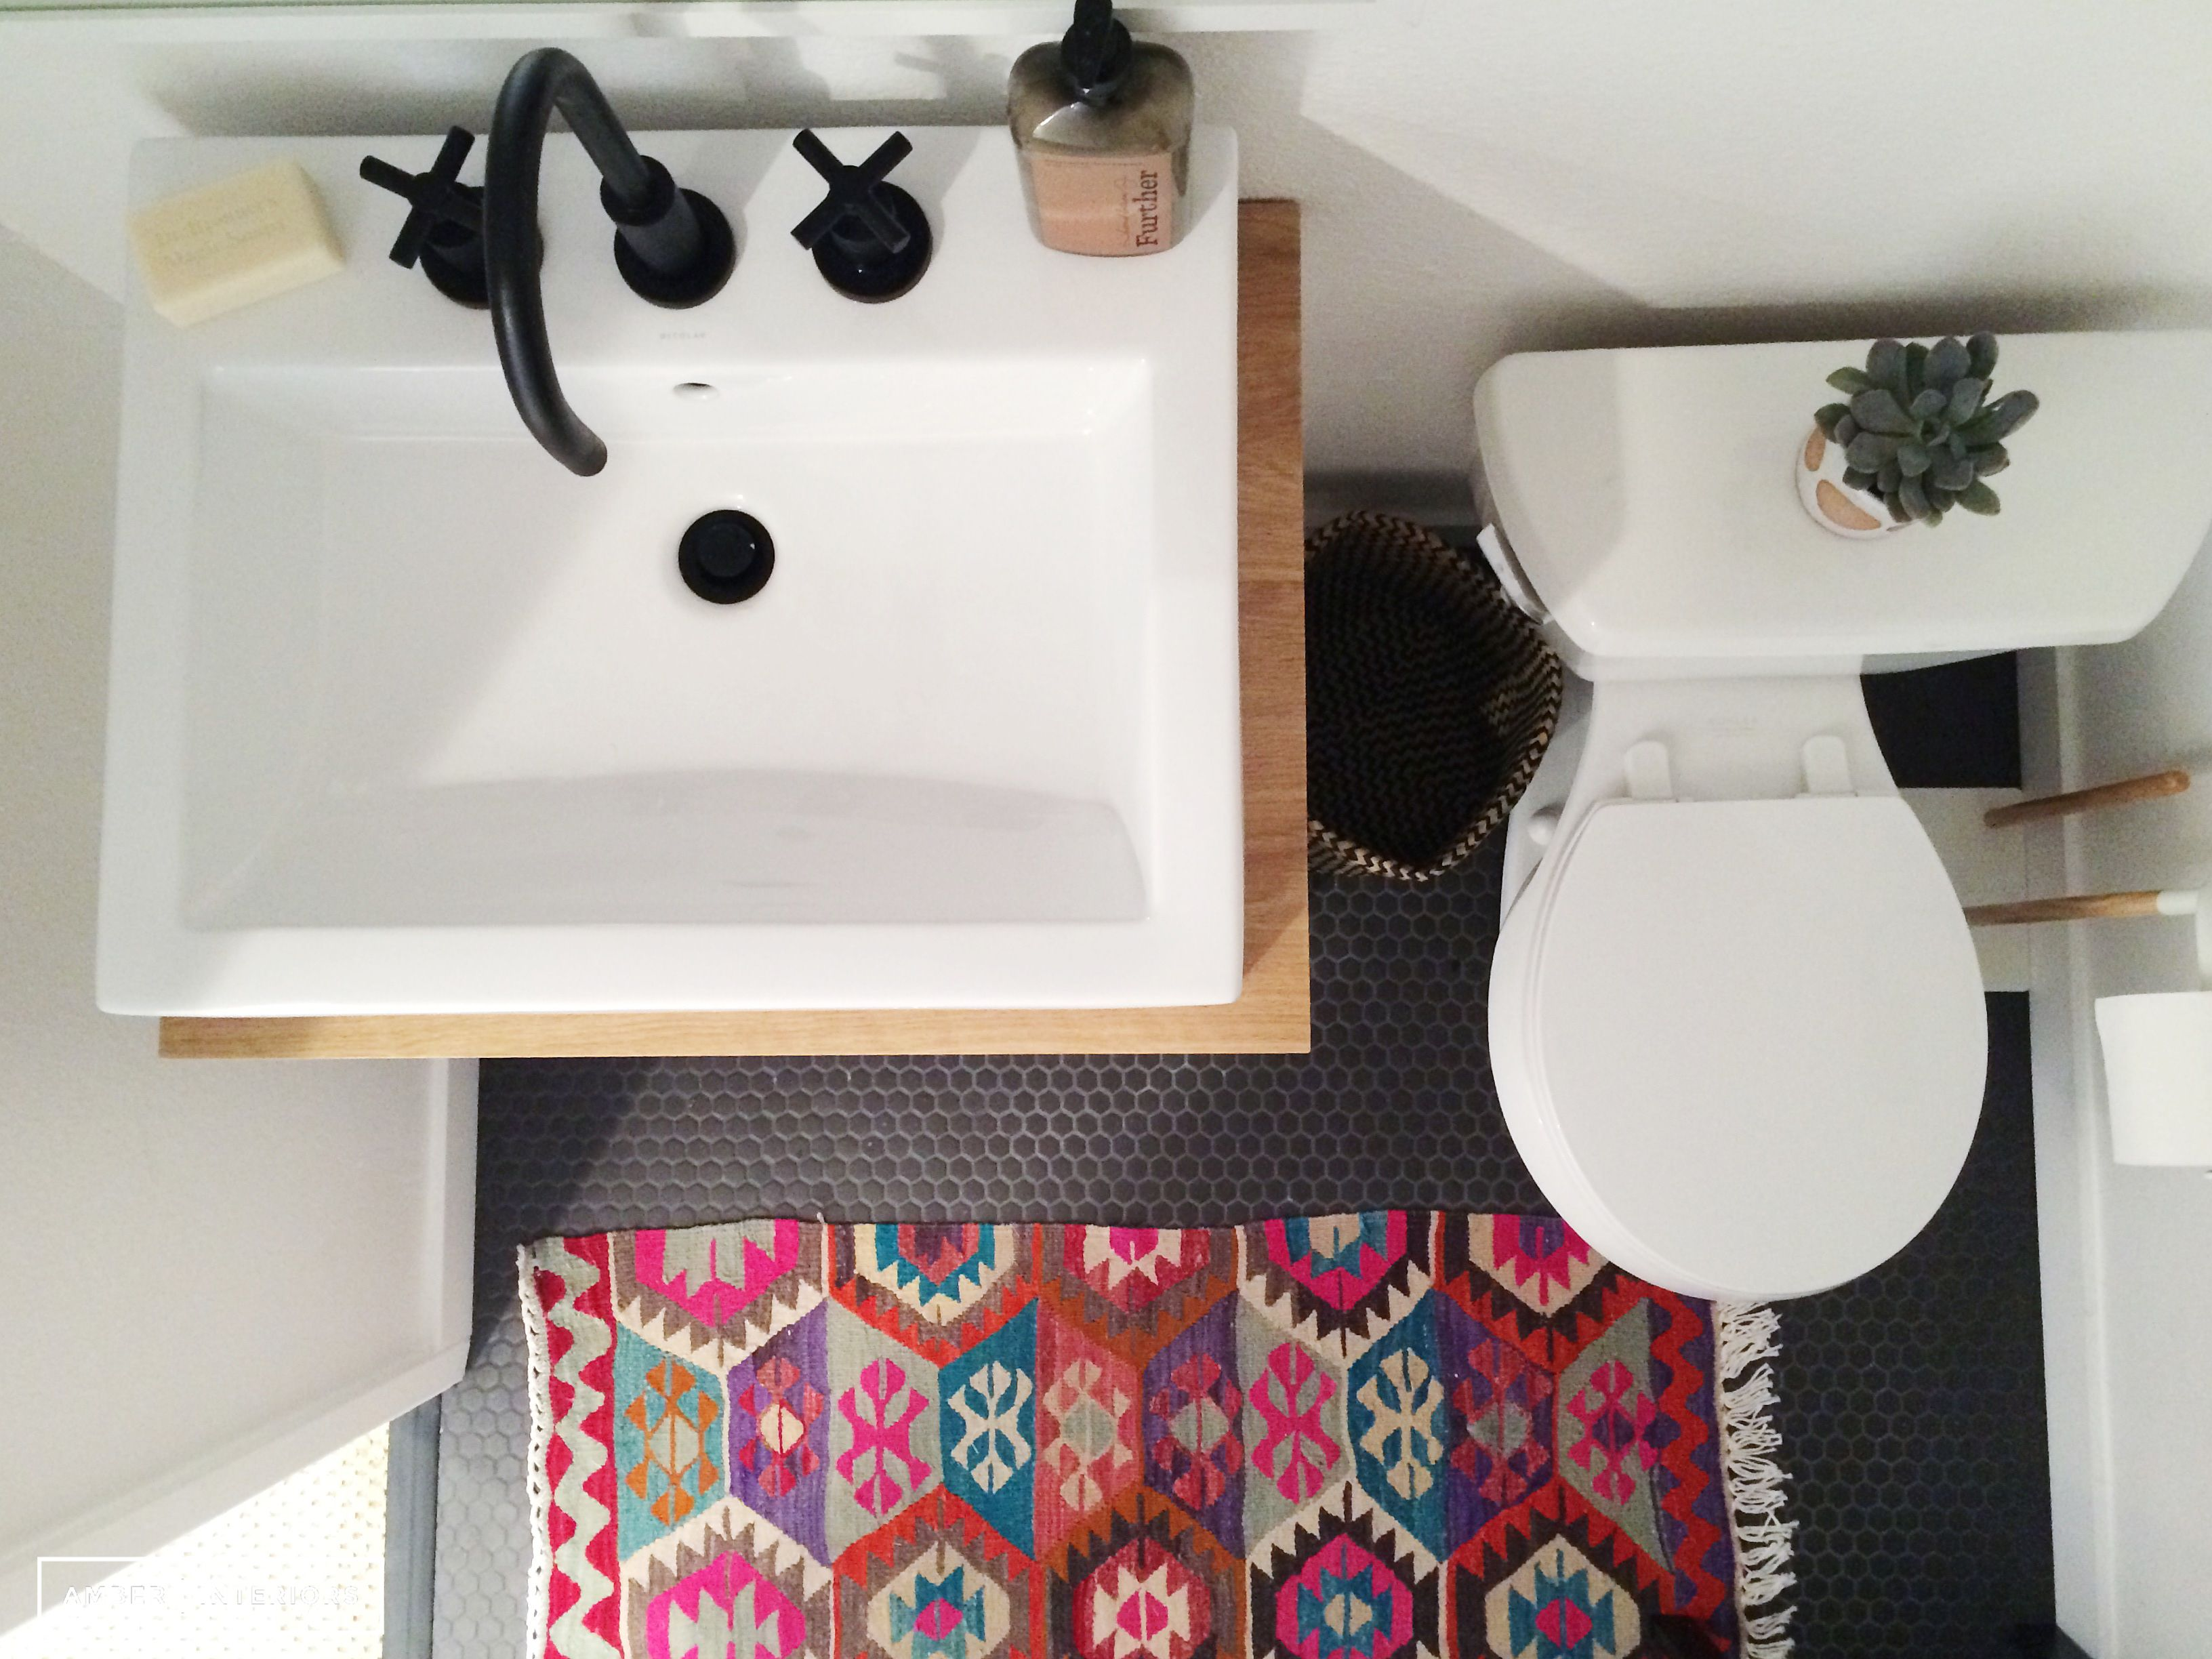 Before And After Office Bathroom Small Bathroom Decor Bathroom Design Small Small Bathroom Sinks